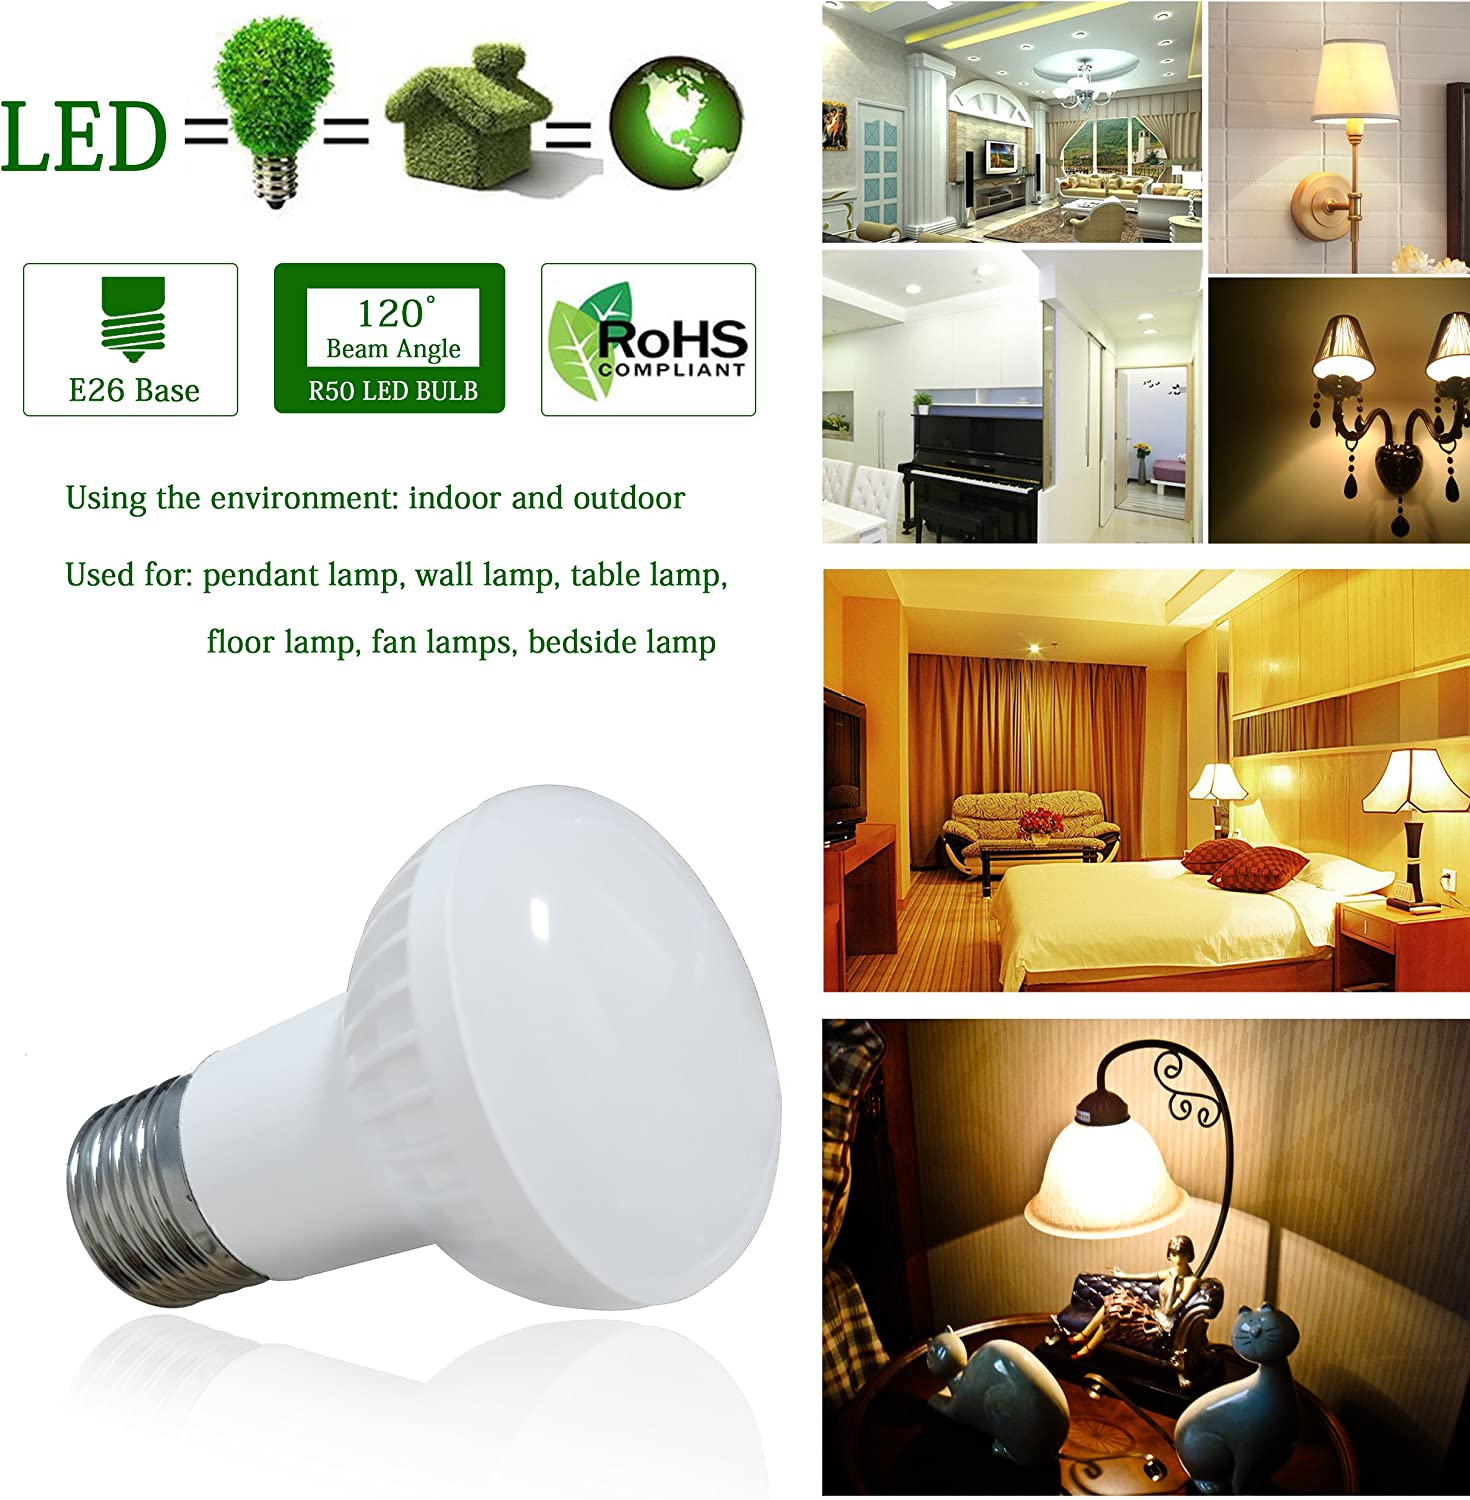 500 Lumen 120 Voltage Imput R16//BR16 Dimmable LED Bulb CIR 85+ 5000K Daylight White 120/° Beam Angle E26 Medium Screw In Base 5W Small frog 4 Pack 50W Incandescent Replacement